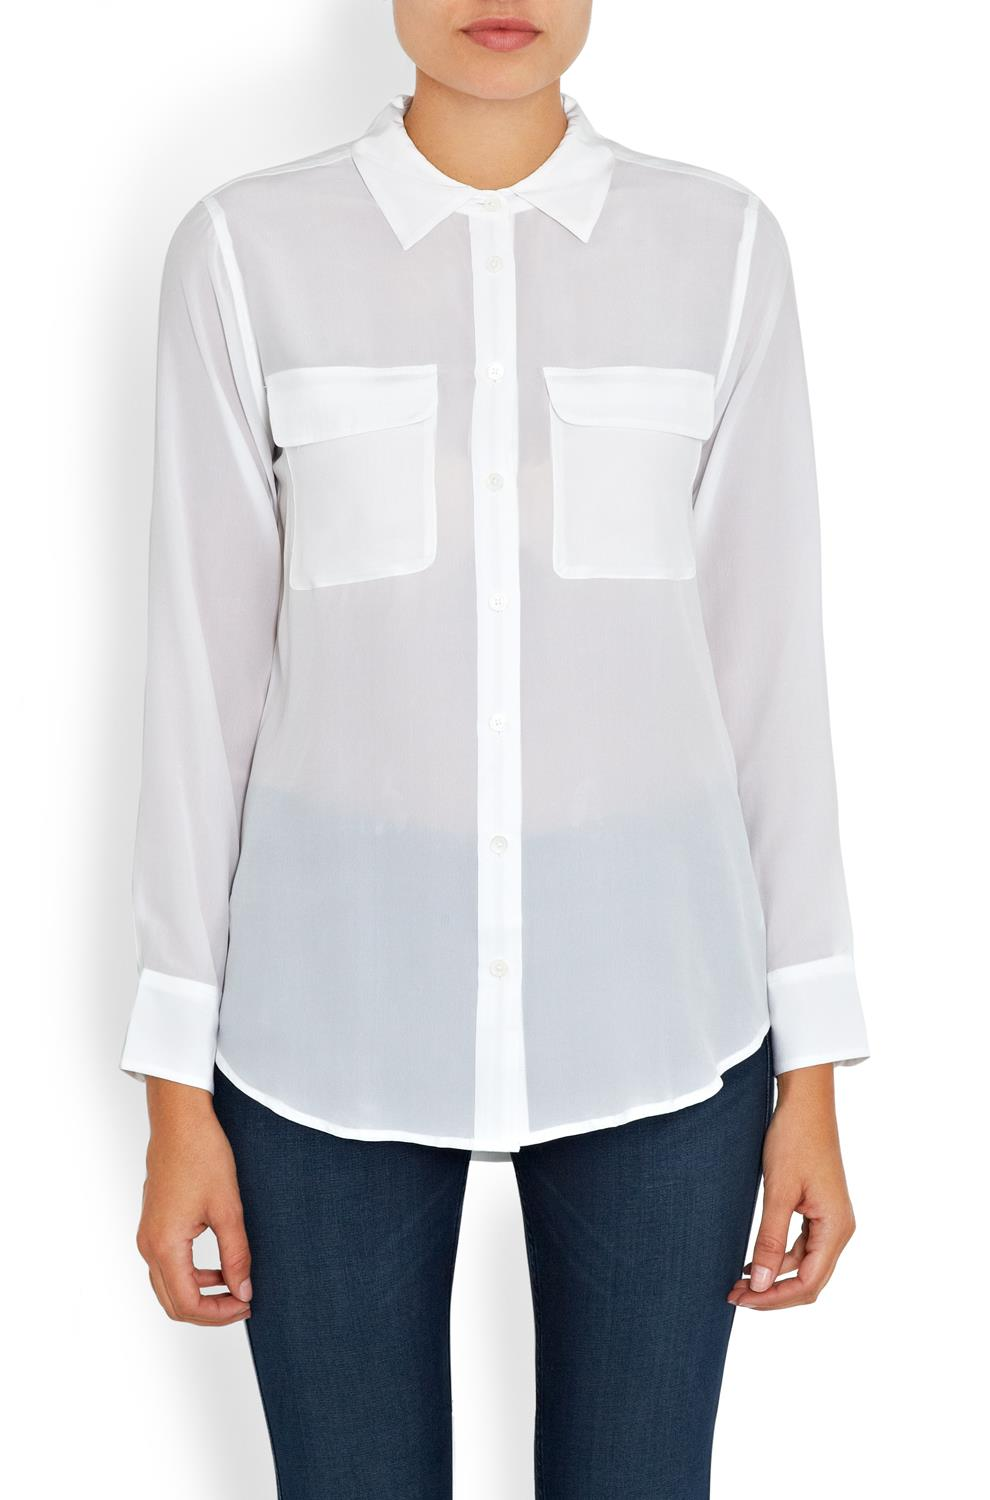 Slim Signature Shirt (100% silk) by Equipment, £225 at Trilogy Stores